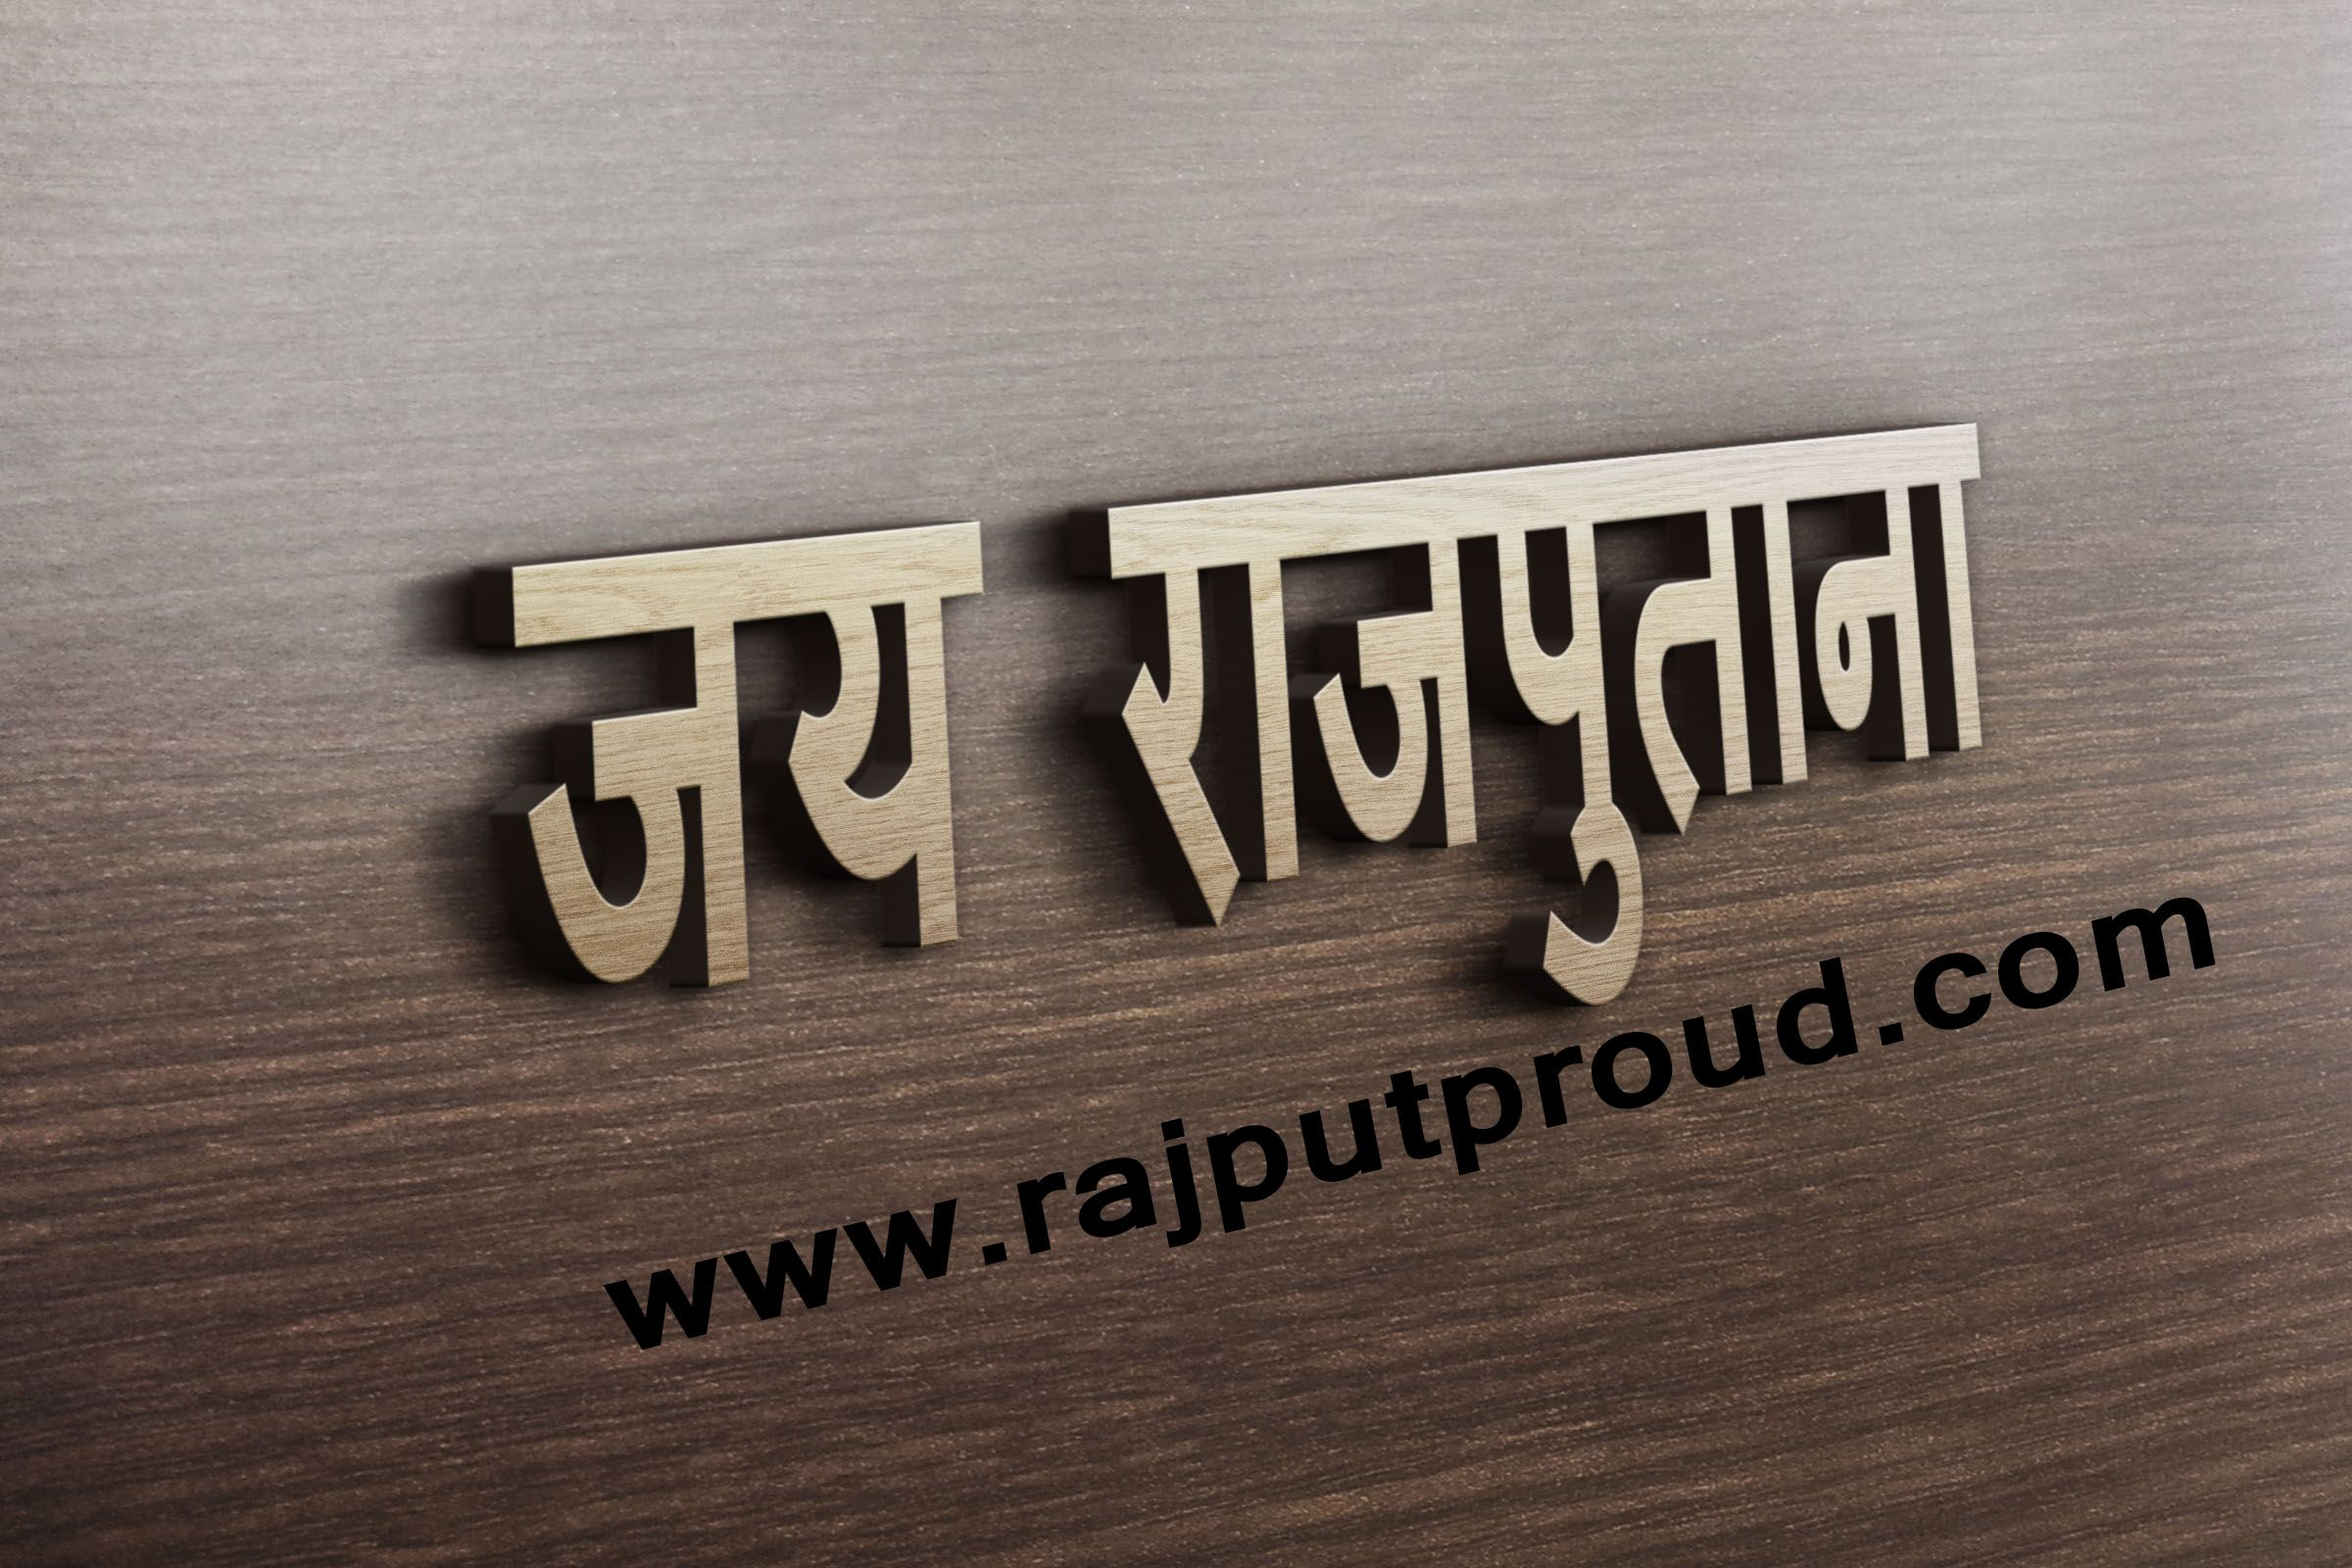 Simple Wallpaper Name Rajput - 04923df214a736f89bf116122d37aaa6  Pictures_1002953.jpg